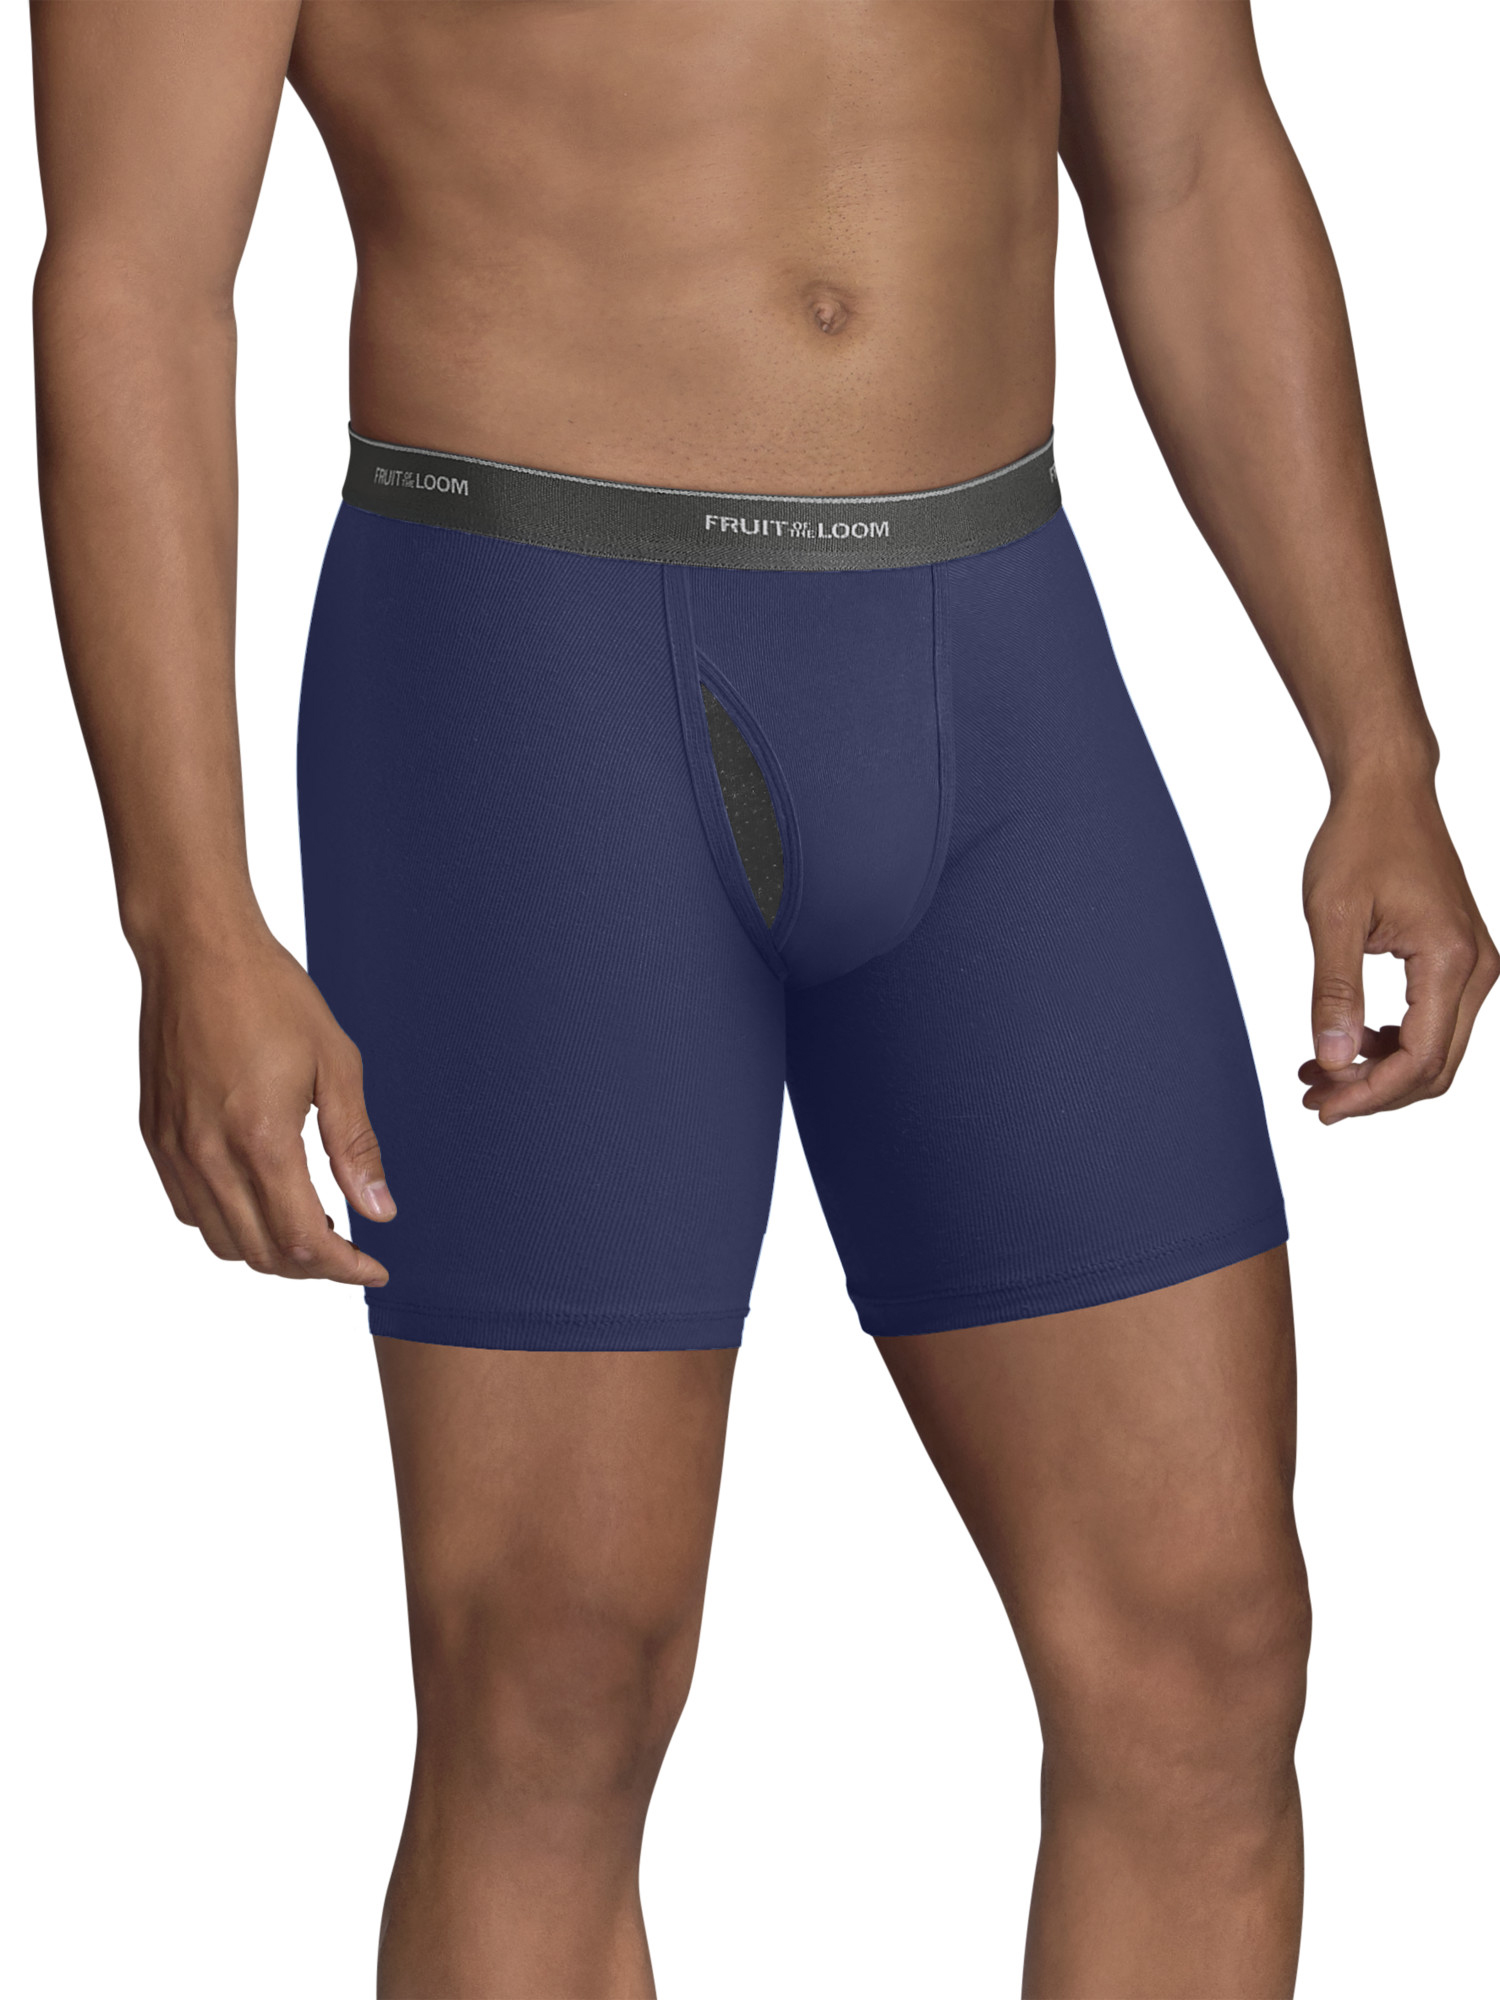 Men's CoolZone Fly Dual Defense Argyle and Solid Boxer Briefs, 5 Pack